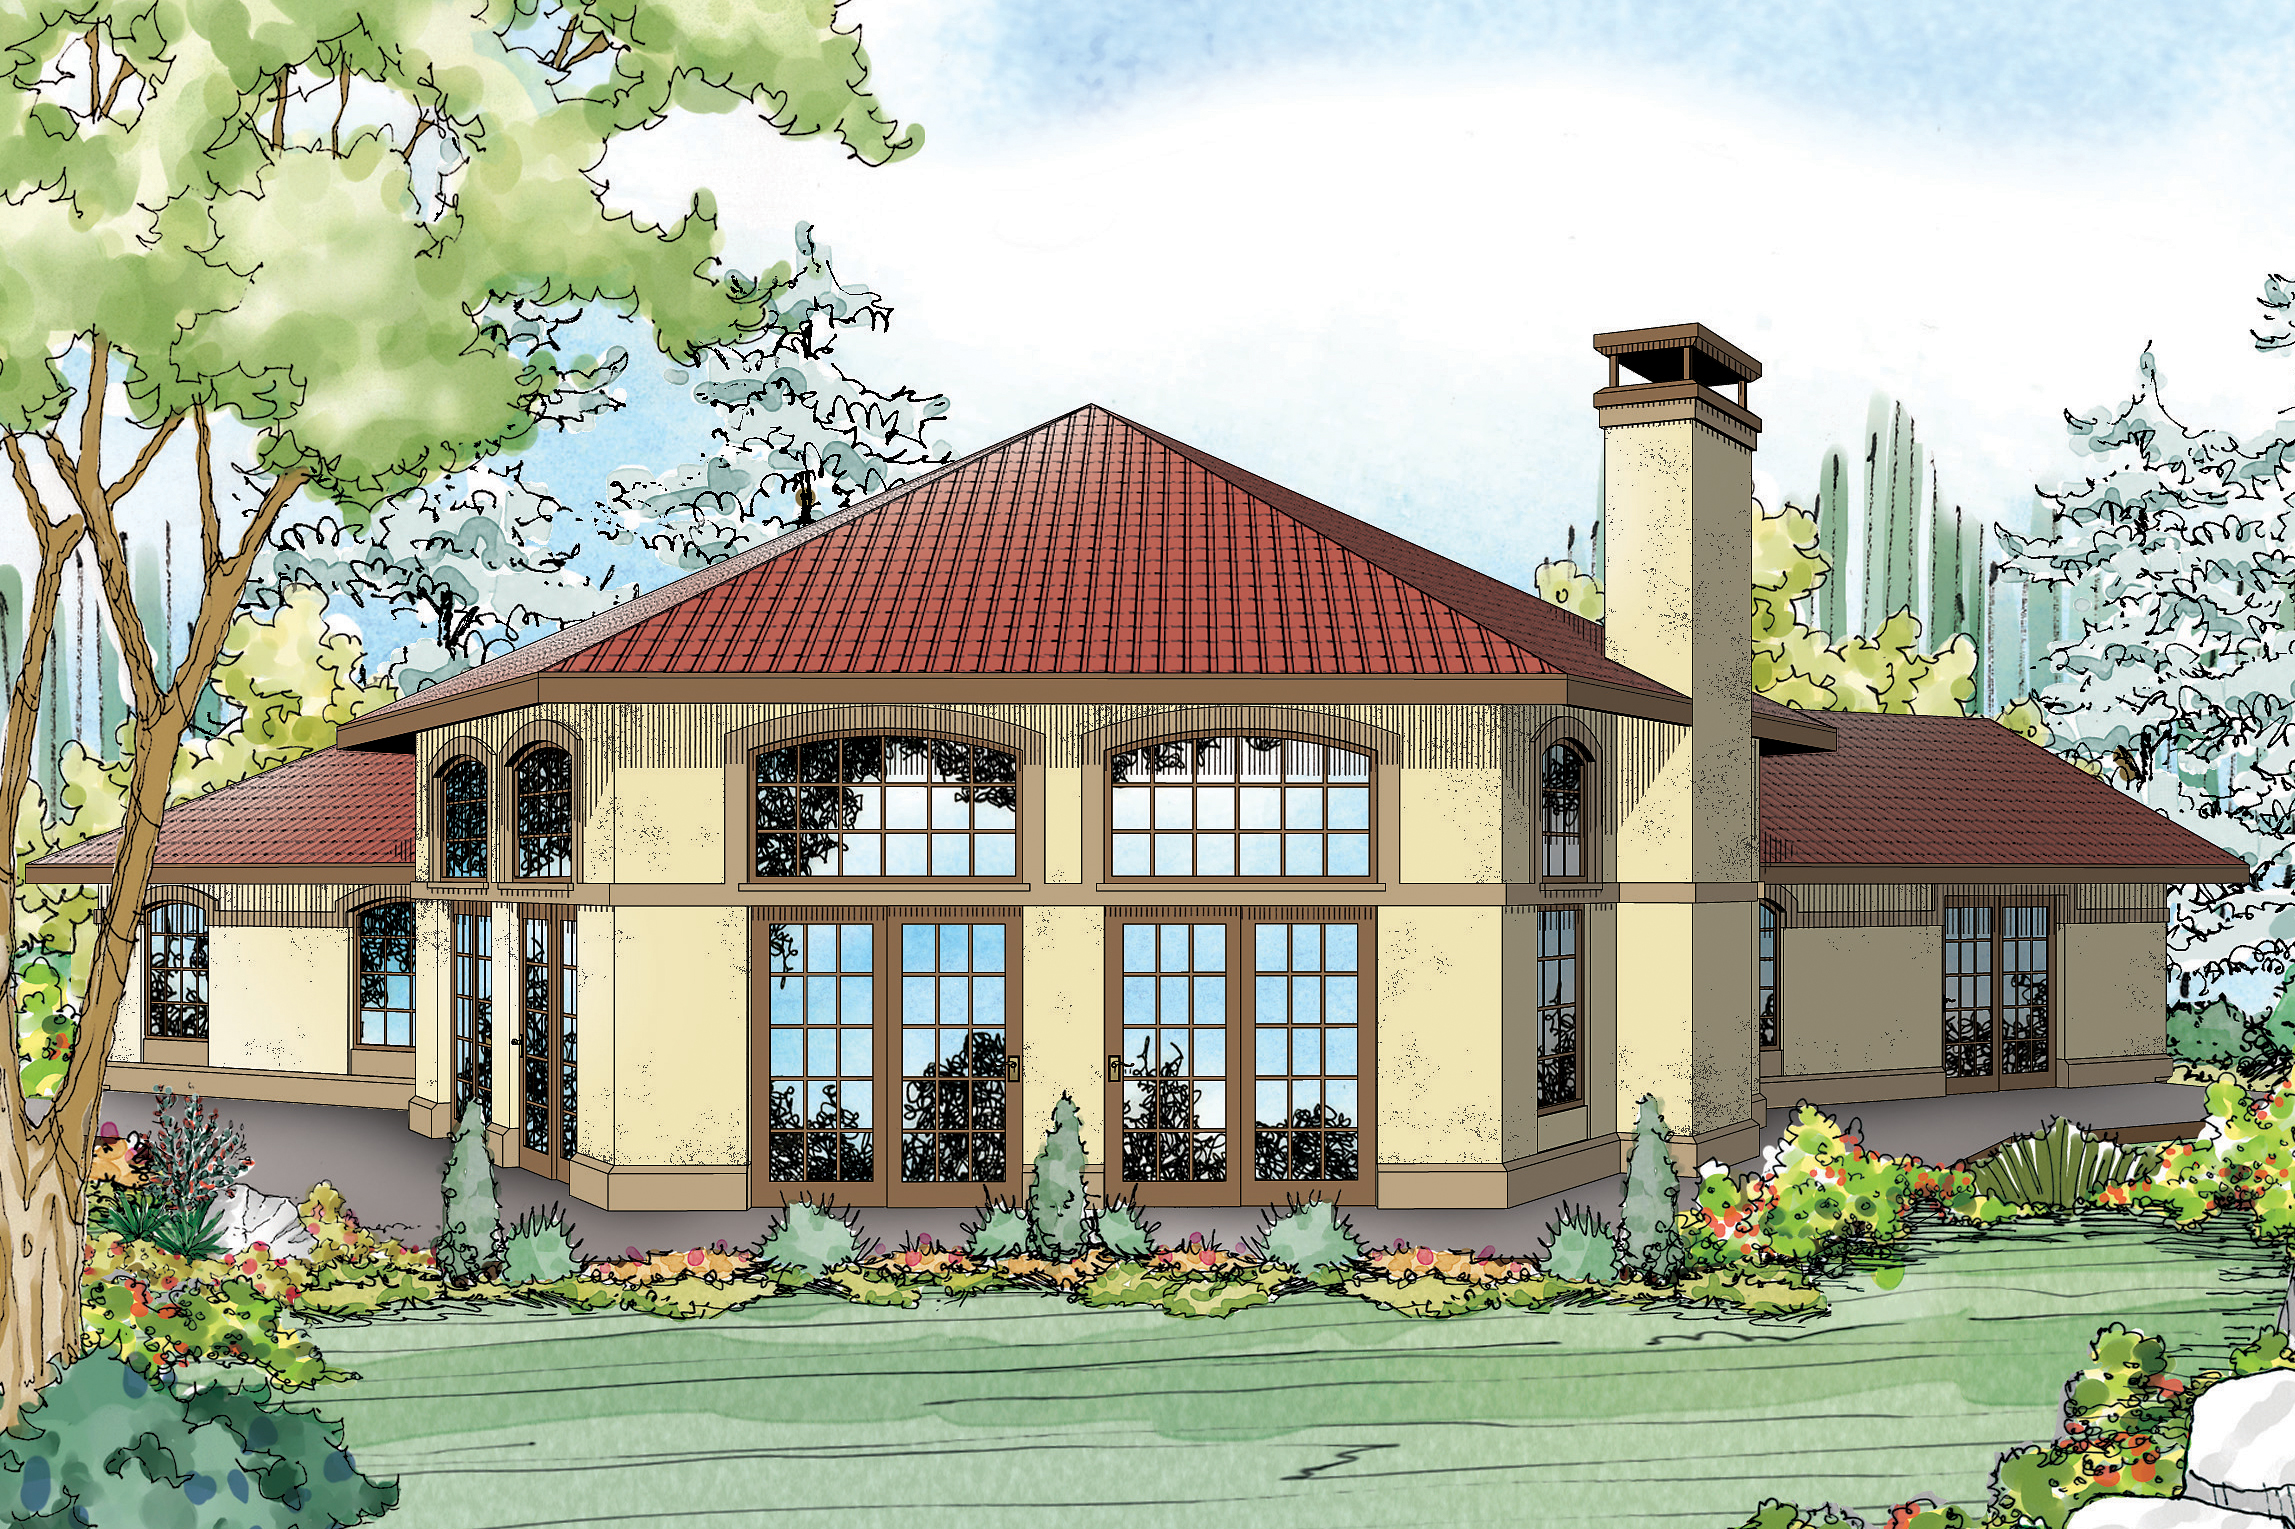 mediterranean house plans rosabella 11 137 associated designs mediterranean house plan rosabella 11 137 rear elevation